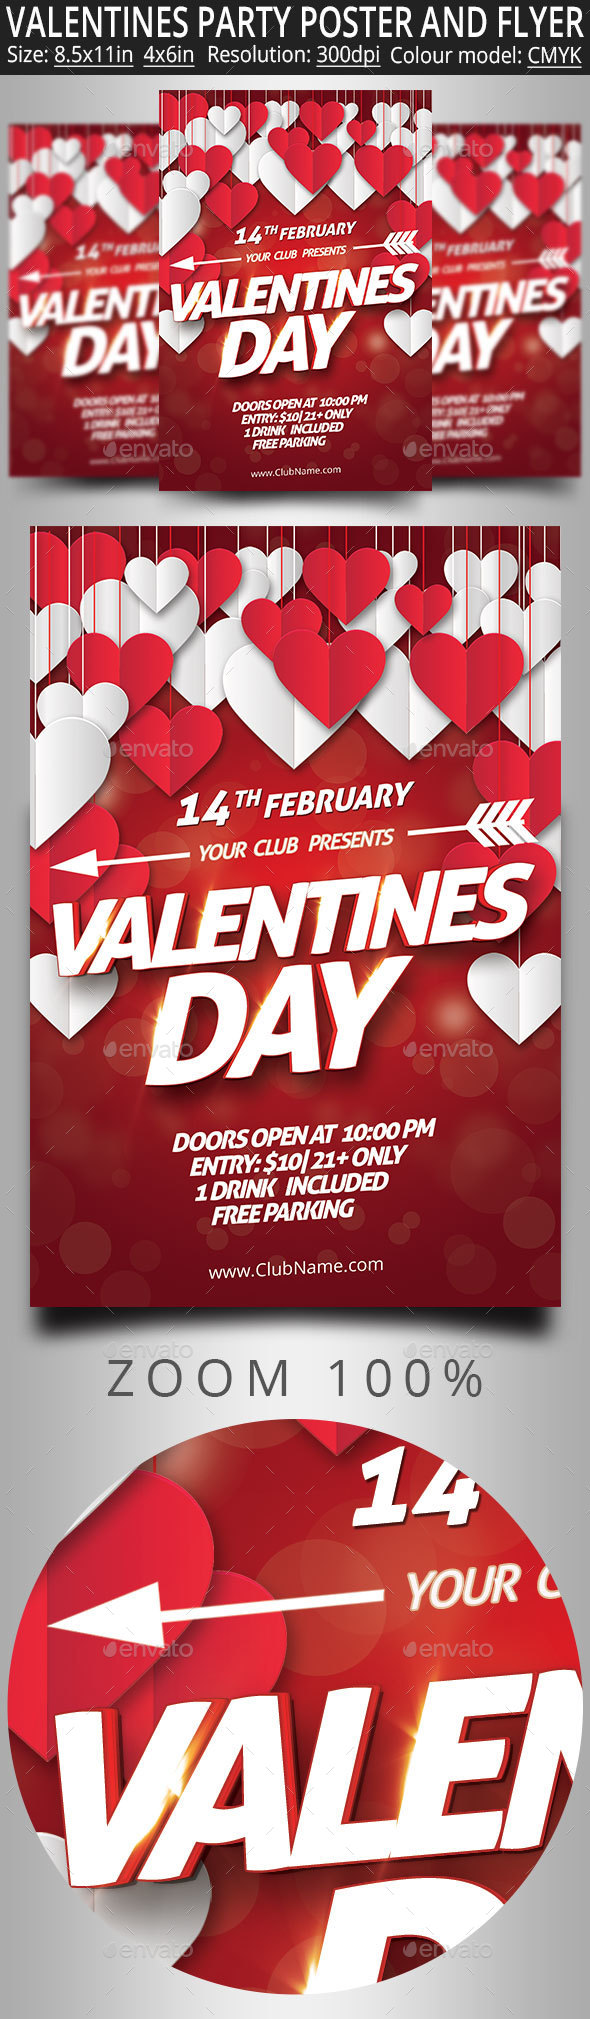 Valentines Party Poster And Flyer - Clubs & Parties Events